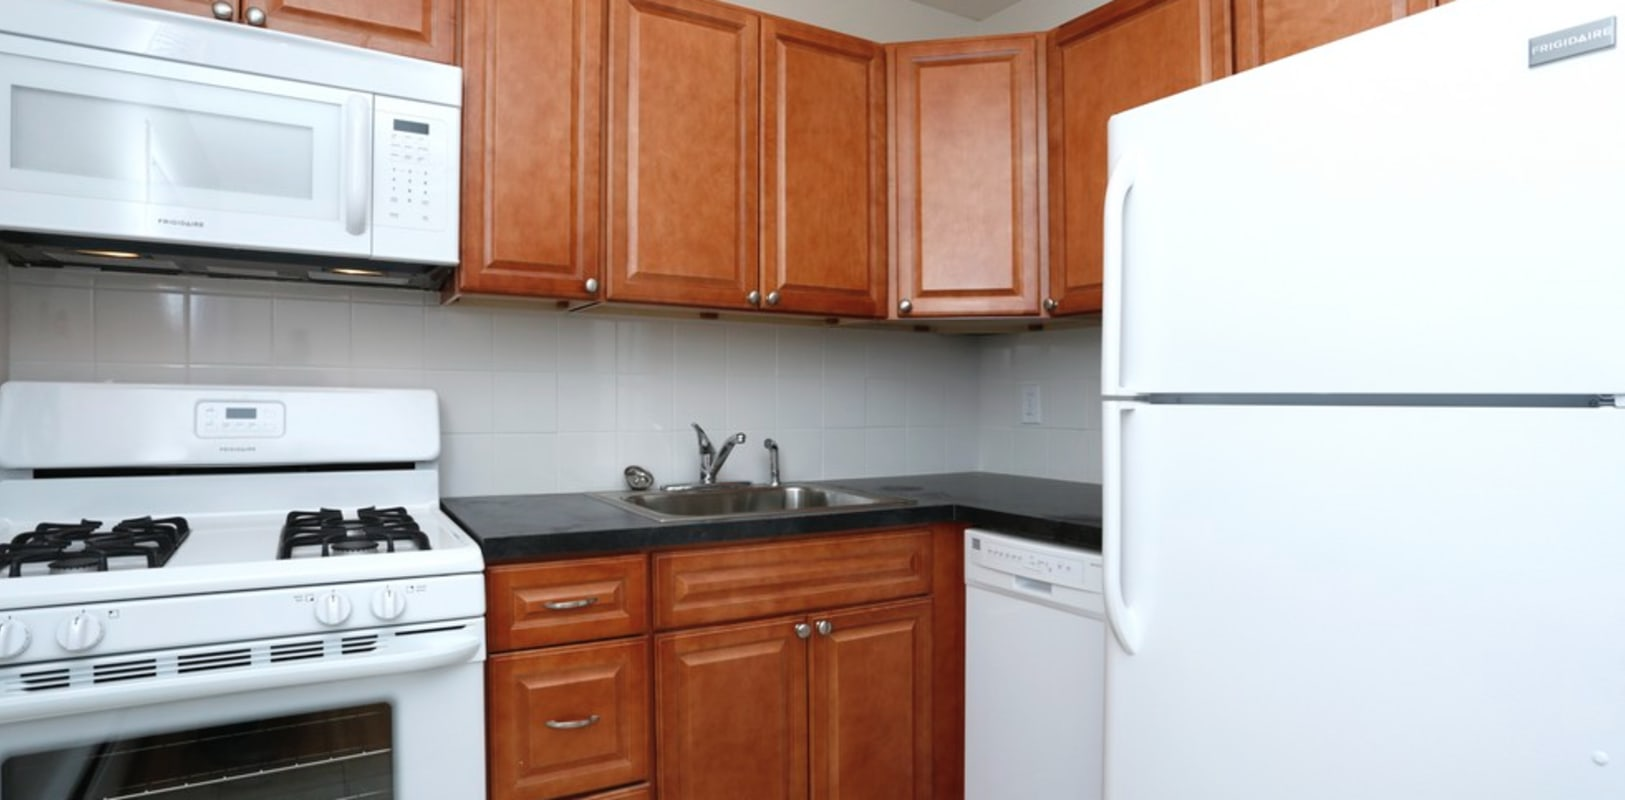 Fully equipped kitchen at Eastgate Apartments in Ewing, New Jersey